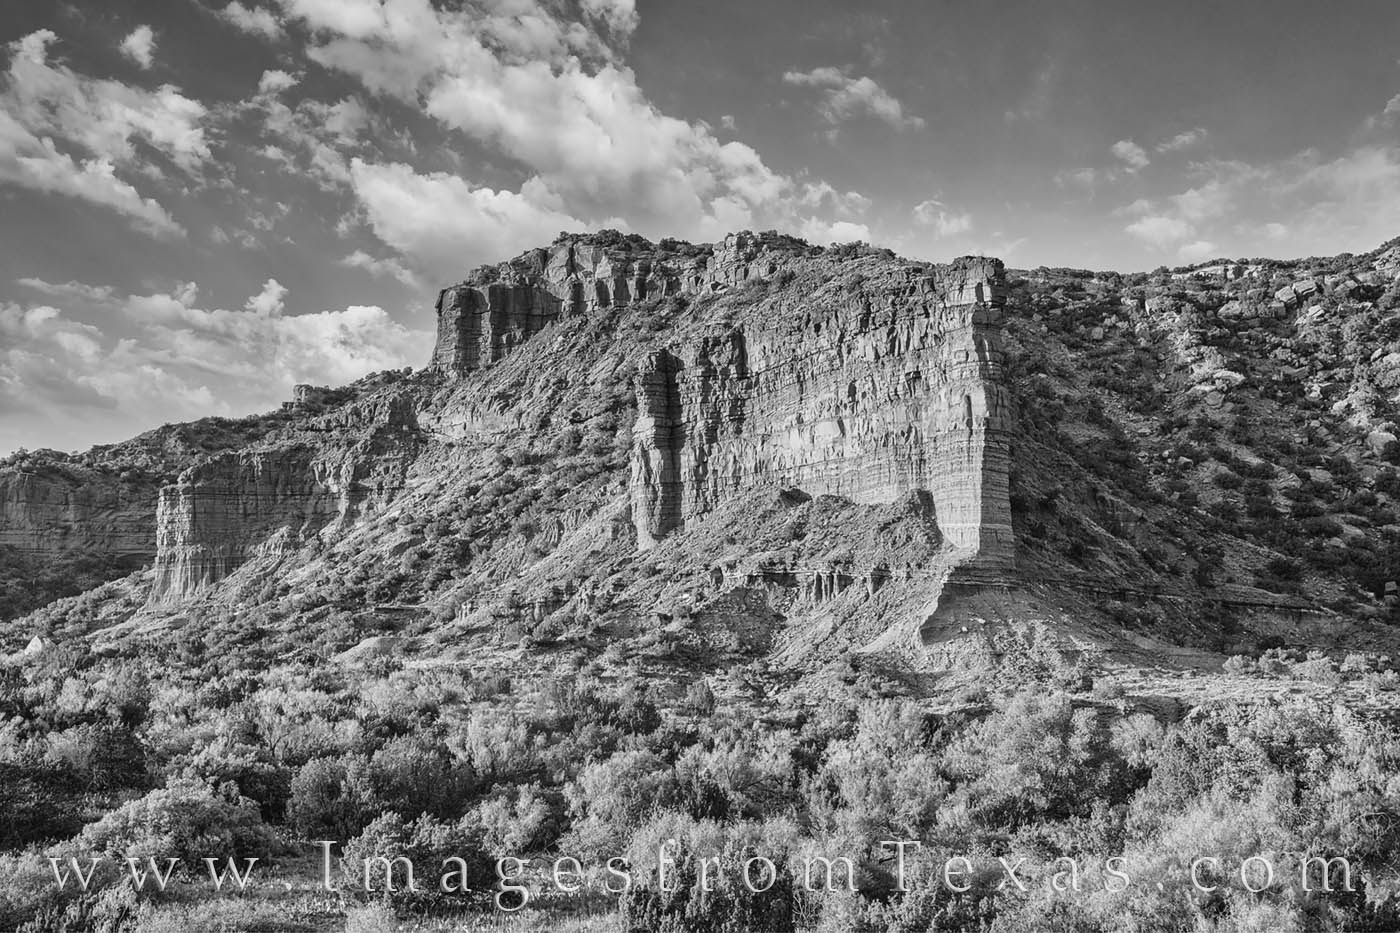 This black and white photograph comes from the South Prong Overlook in Caprock Canyons State Park. Late afternoon light shined...